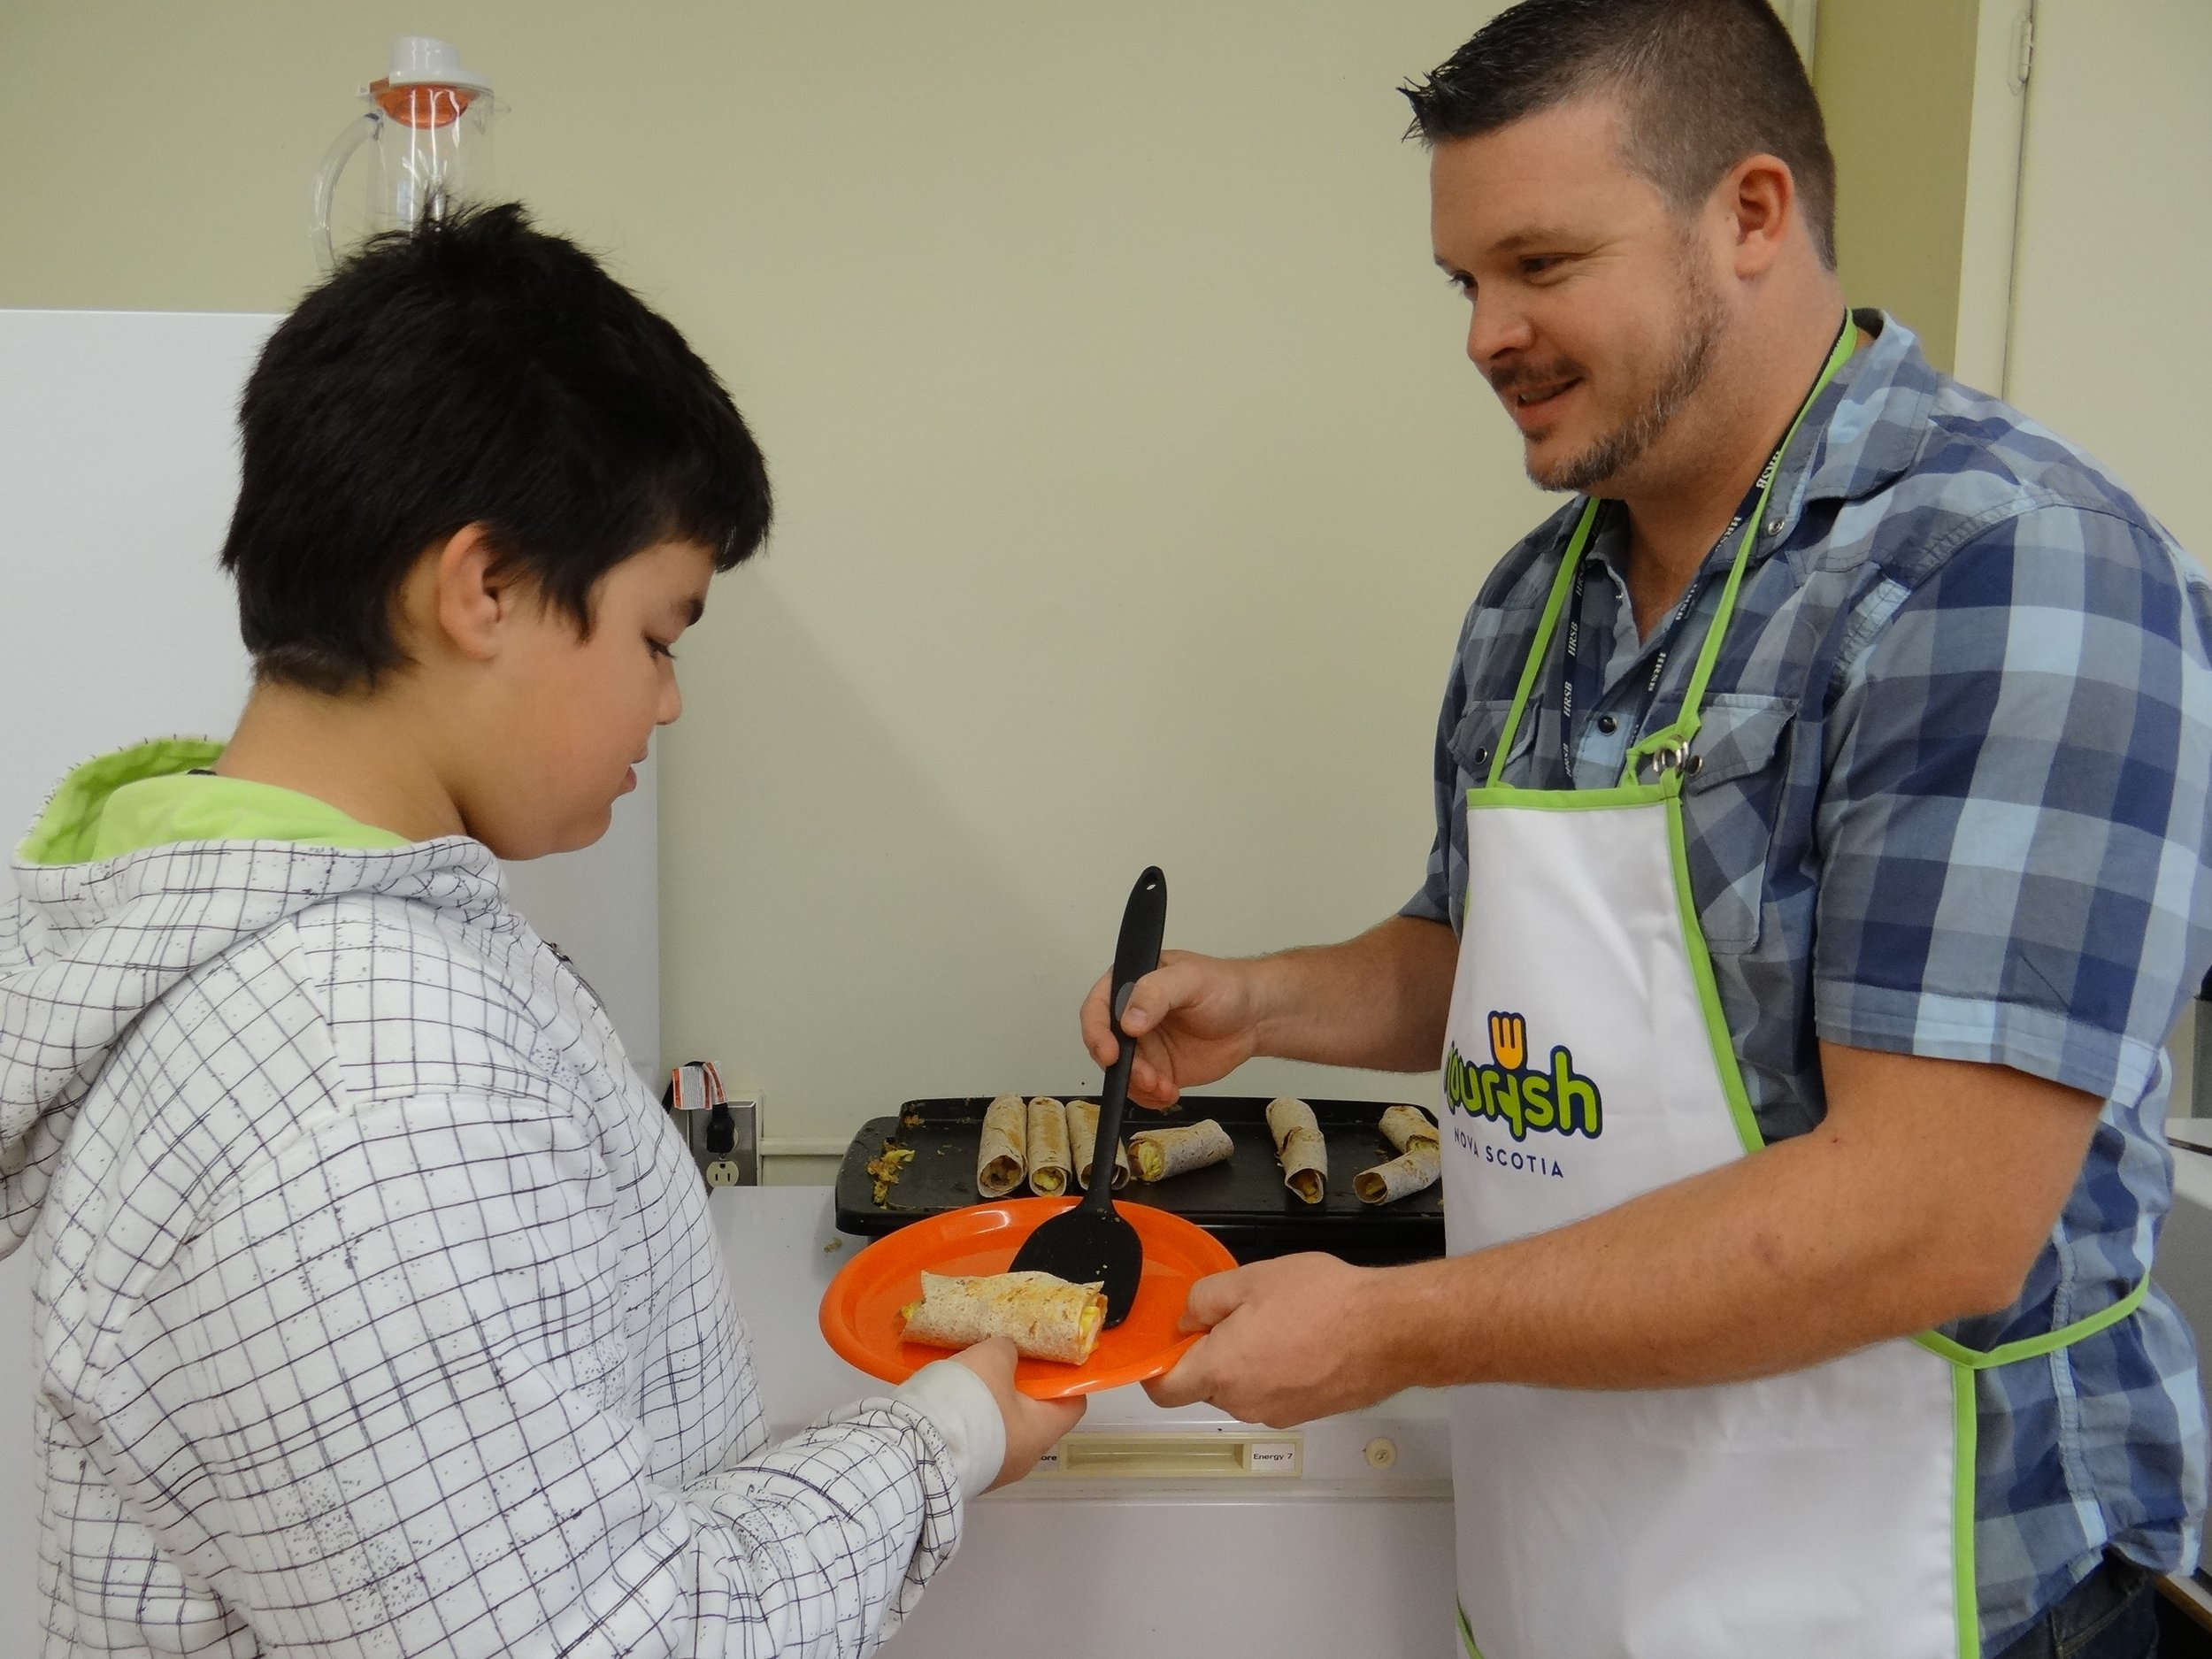 Good Food = Good Thinking - Breakfast Programs help support a student's health and nutritional well being. Well-nourished students are ready to learn, they have more energy, and are less distracted by hunger. 93% of Nova Scotia public schools offer breakfast. We're working towards serving nutritious breakfast made available to all students, every day, in every school across the region. Nourish is committed to helping schools strengthen and grow their breakfast programs.